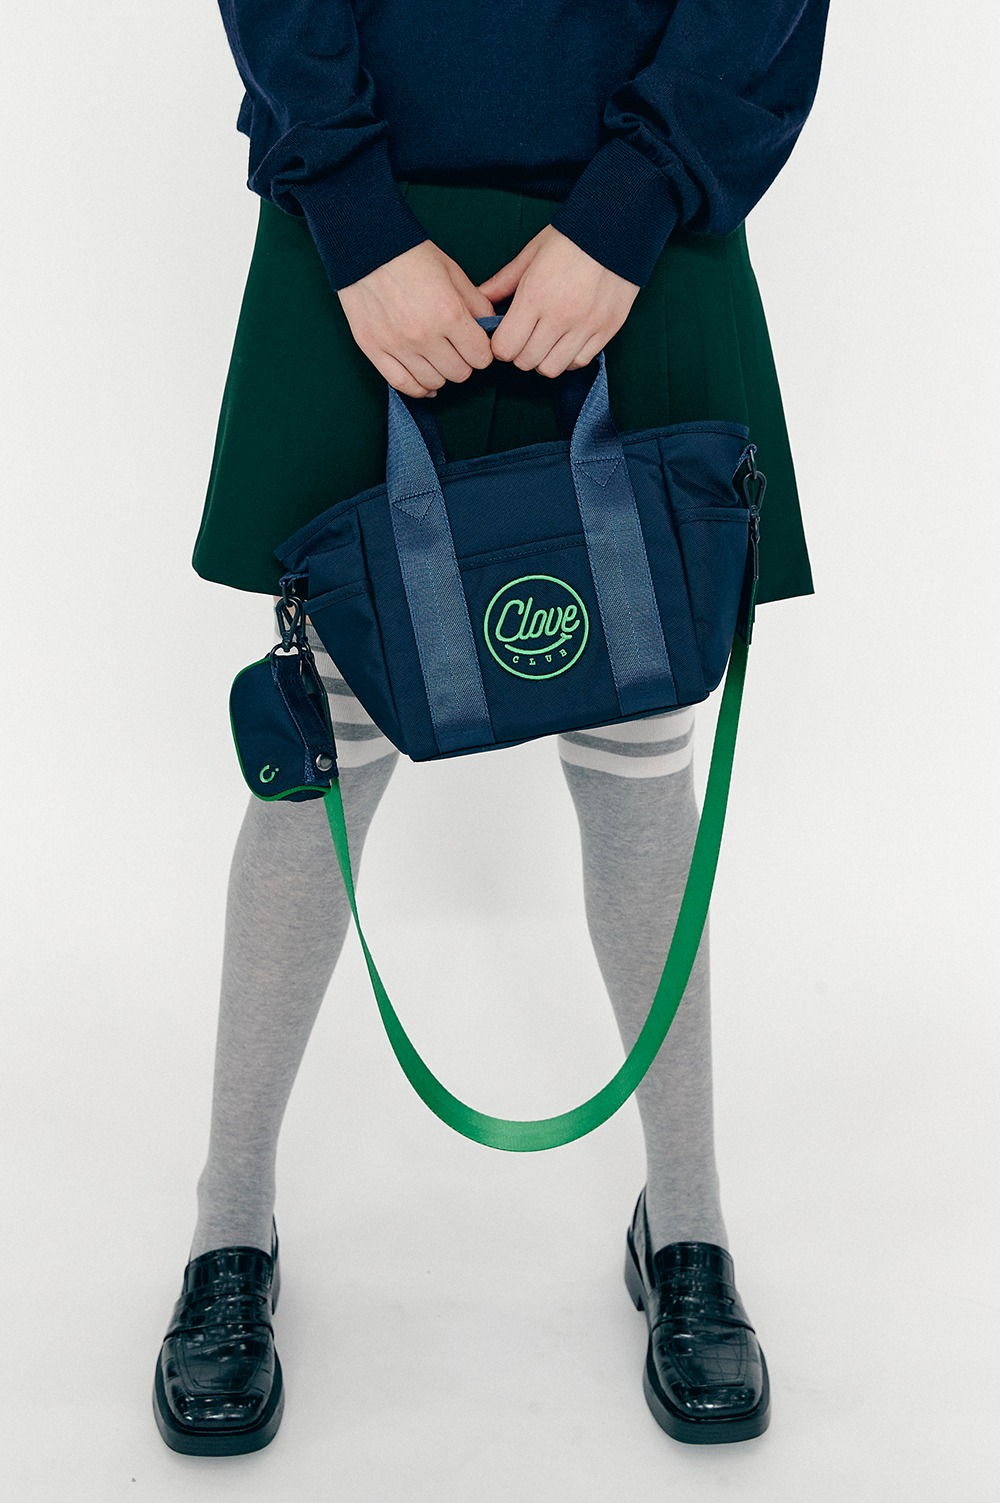 [FW20 CLOVE] Shoulder Bag with Golf Ball Case (Navy)